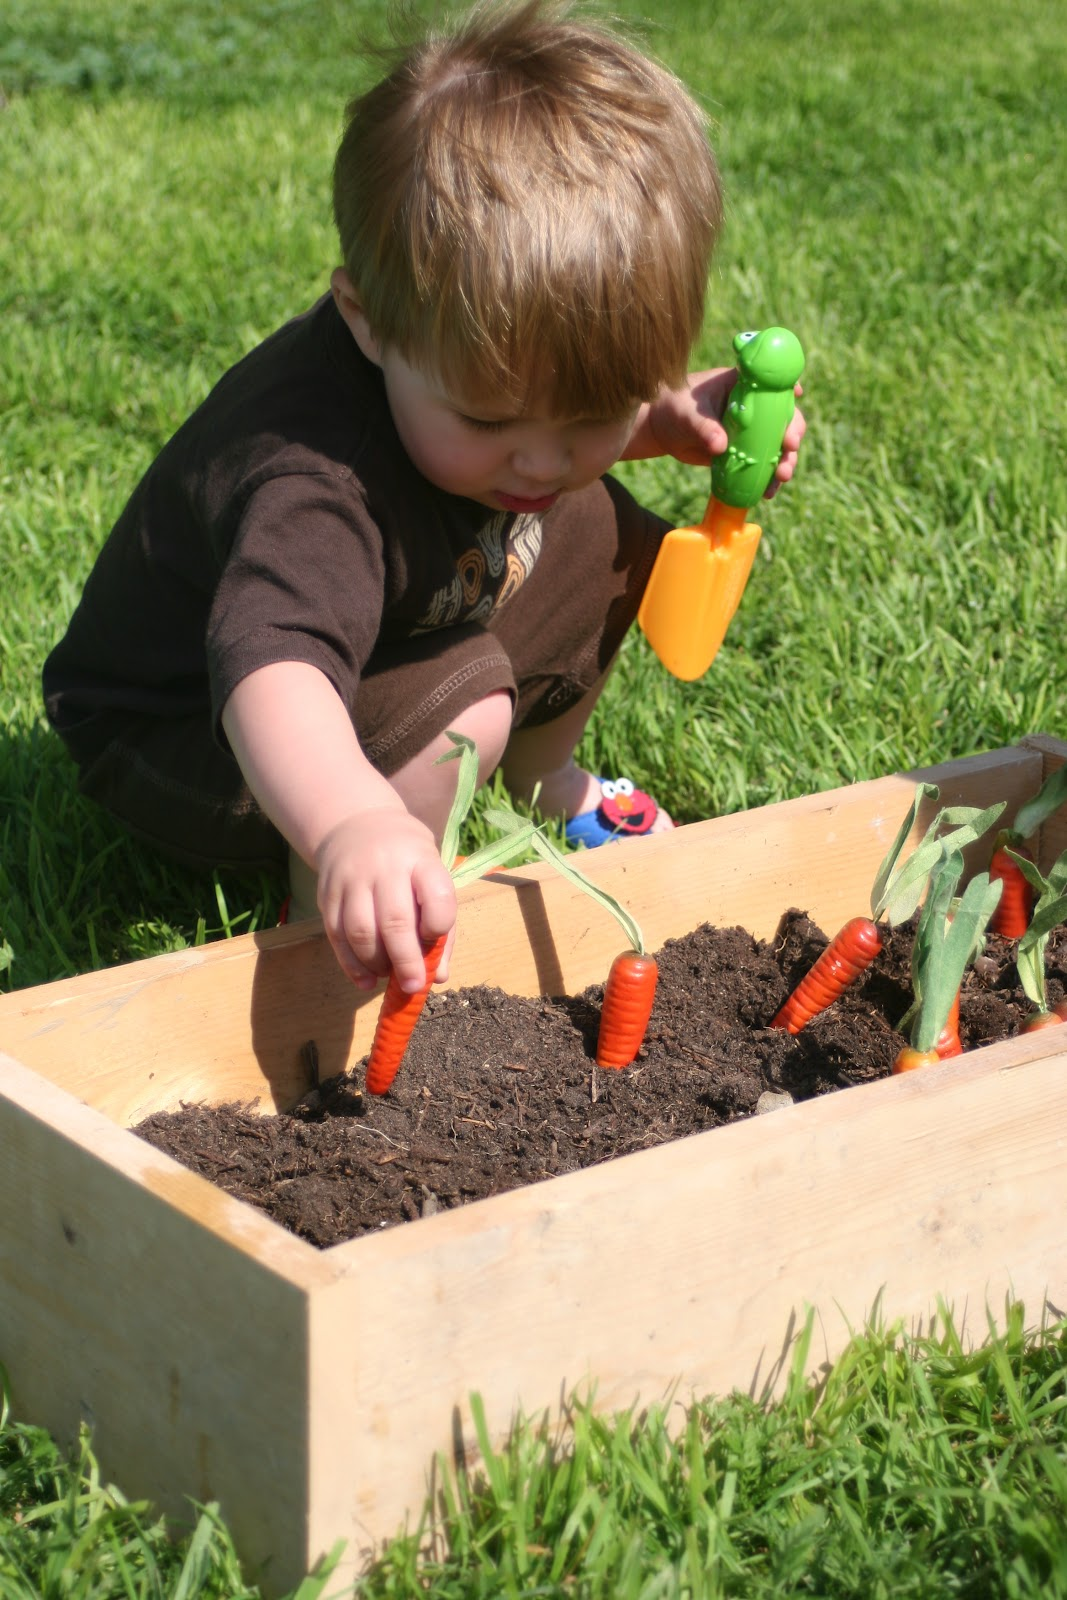 Vegetable garden pictures for kids - I Had Some Fake Carrots I Bought At A Garage Sale Last Year For 5 Cents A Piece Cheap I Was Planning A Fabulous Easter Project With Them But Easter Snuck